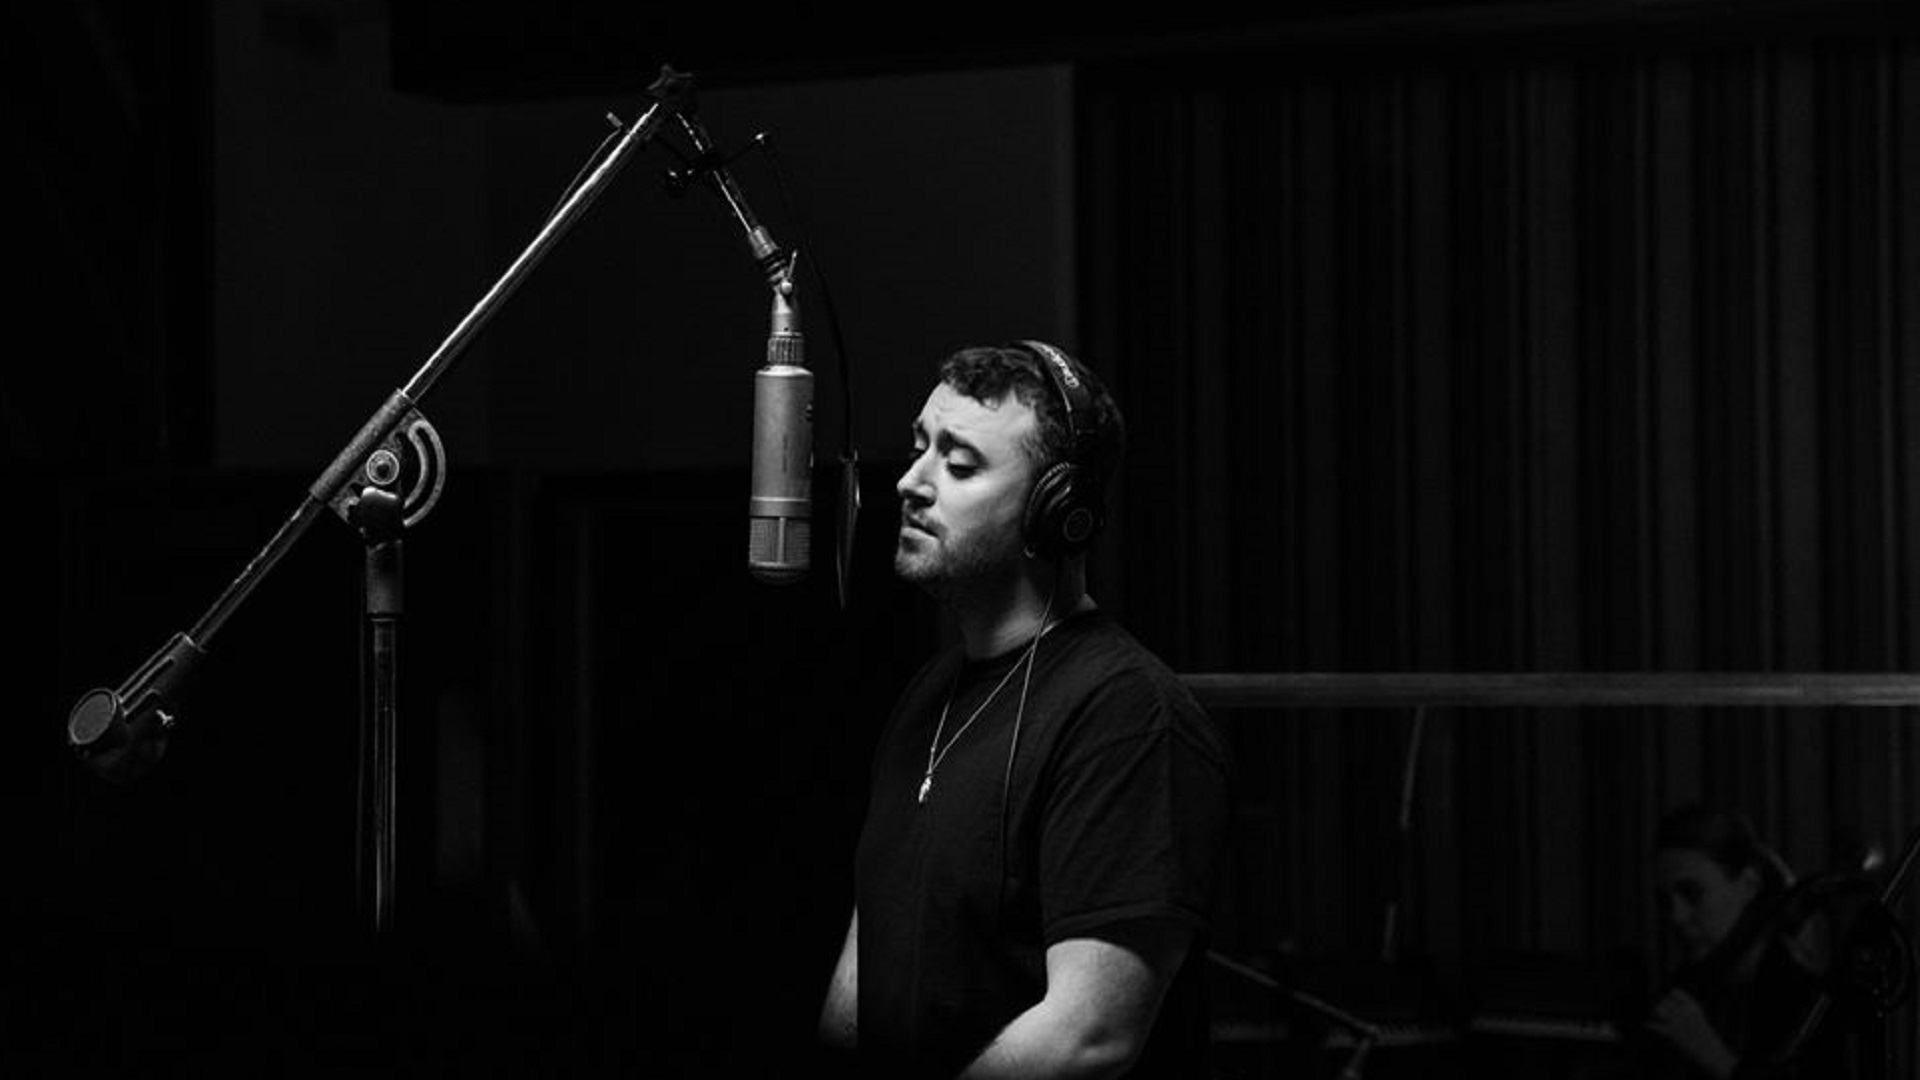 Sam Smith versiona 'Fix you' de Coldplay